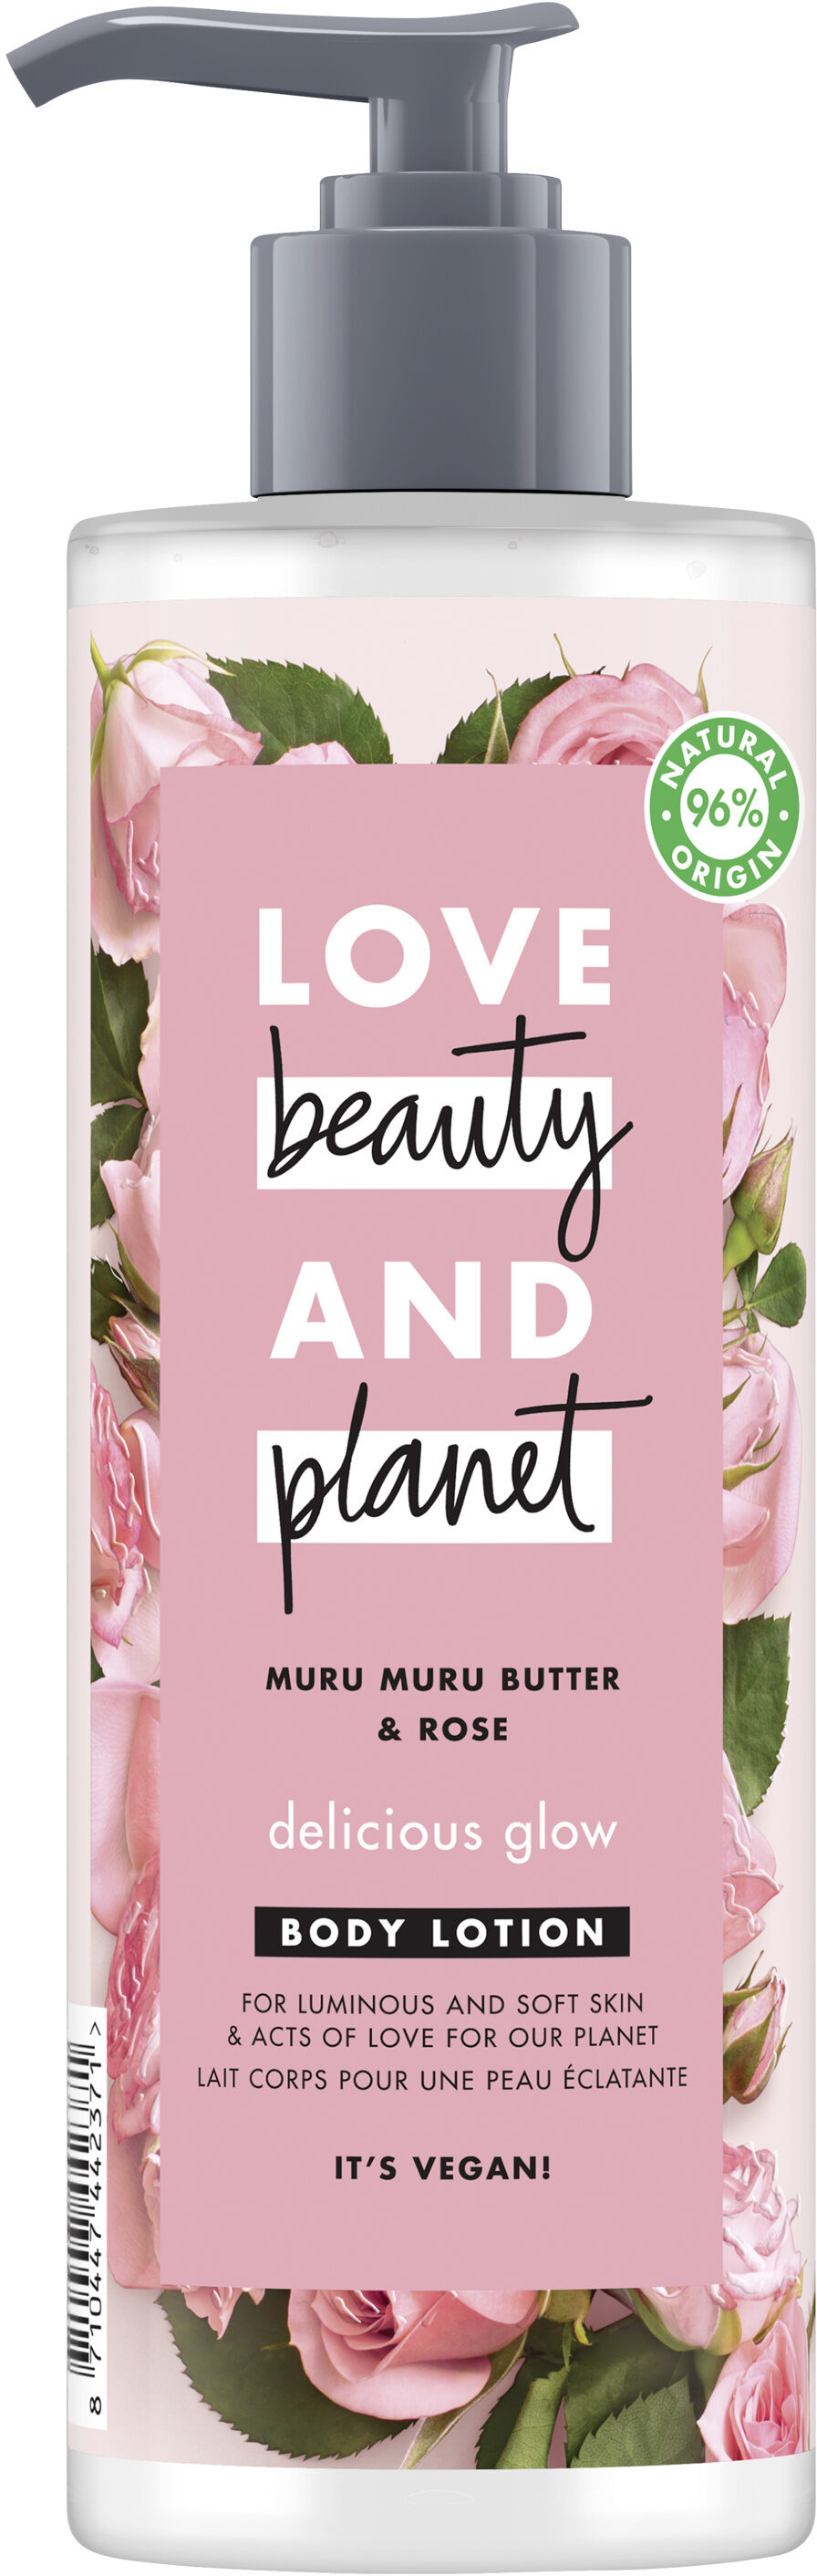 Love Beauty And Planet Lait Corps Éclat Délicat - Product - fr